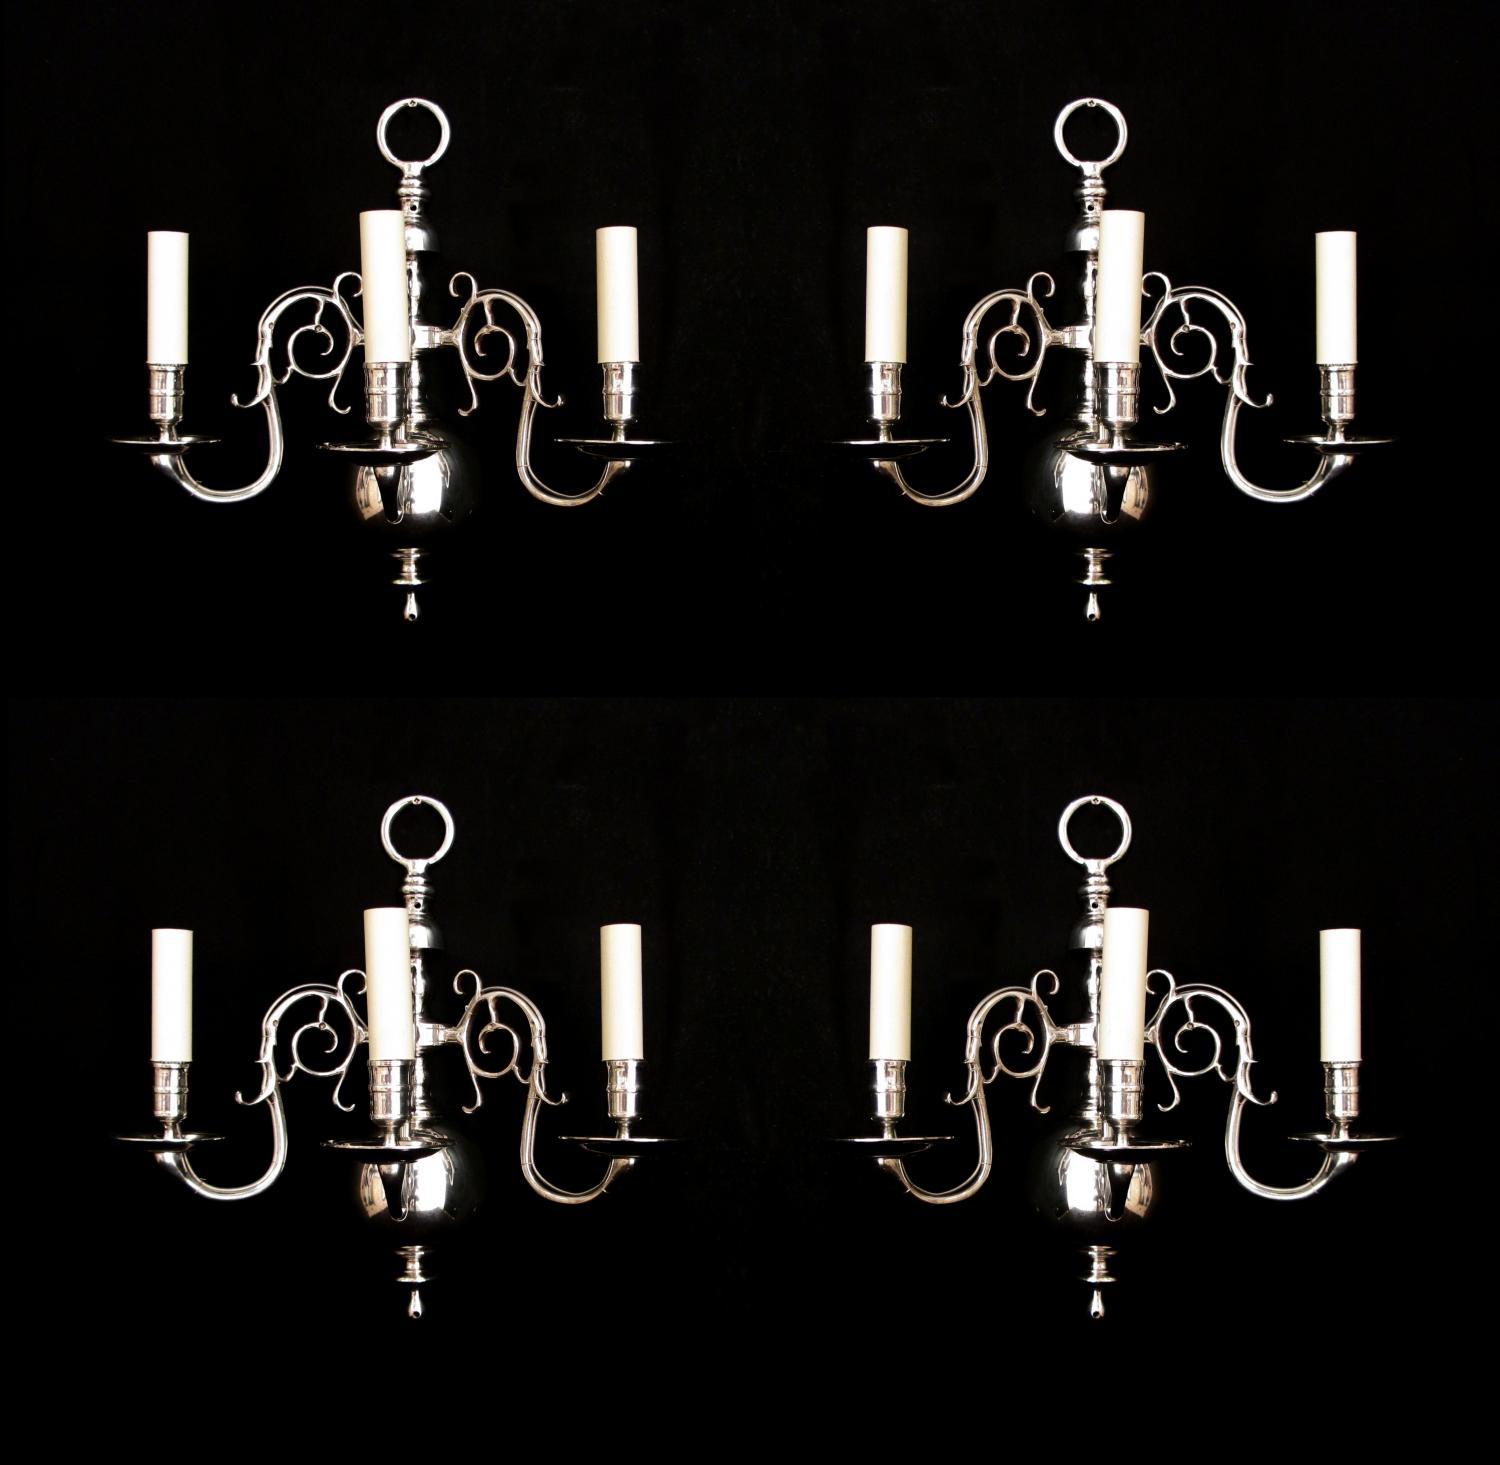 A set of 4 Dutch style silvered wall lights